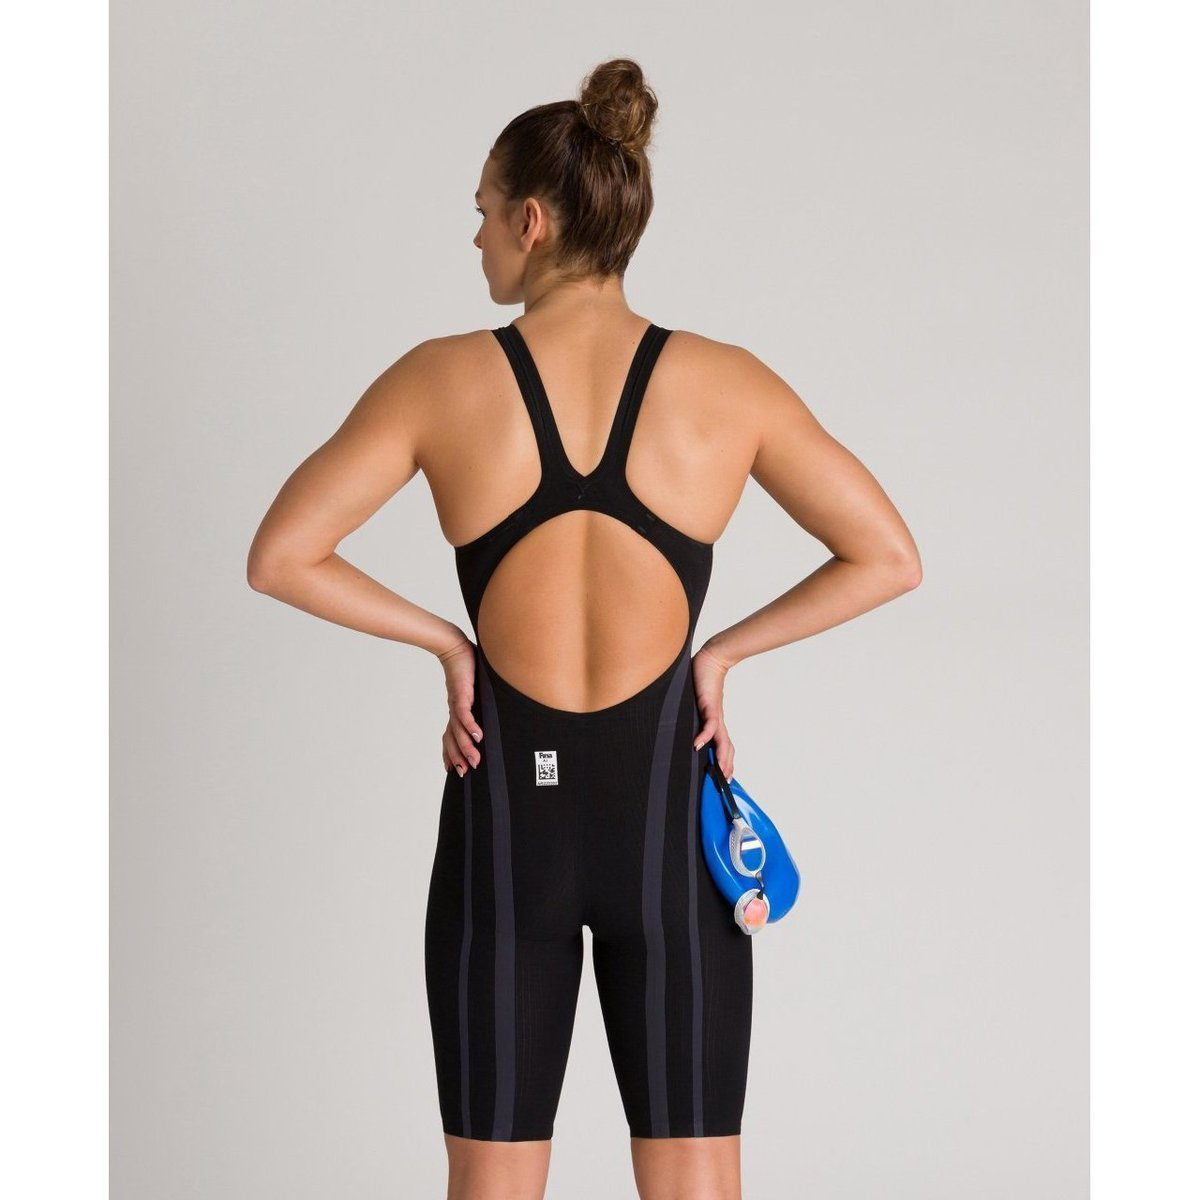 ARENA POWERSKIN Carbon Core FX Women's Open Back - Black-Gold-TechSuits.ca